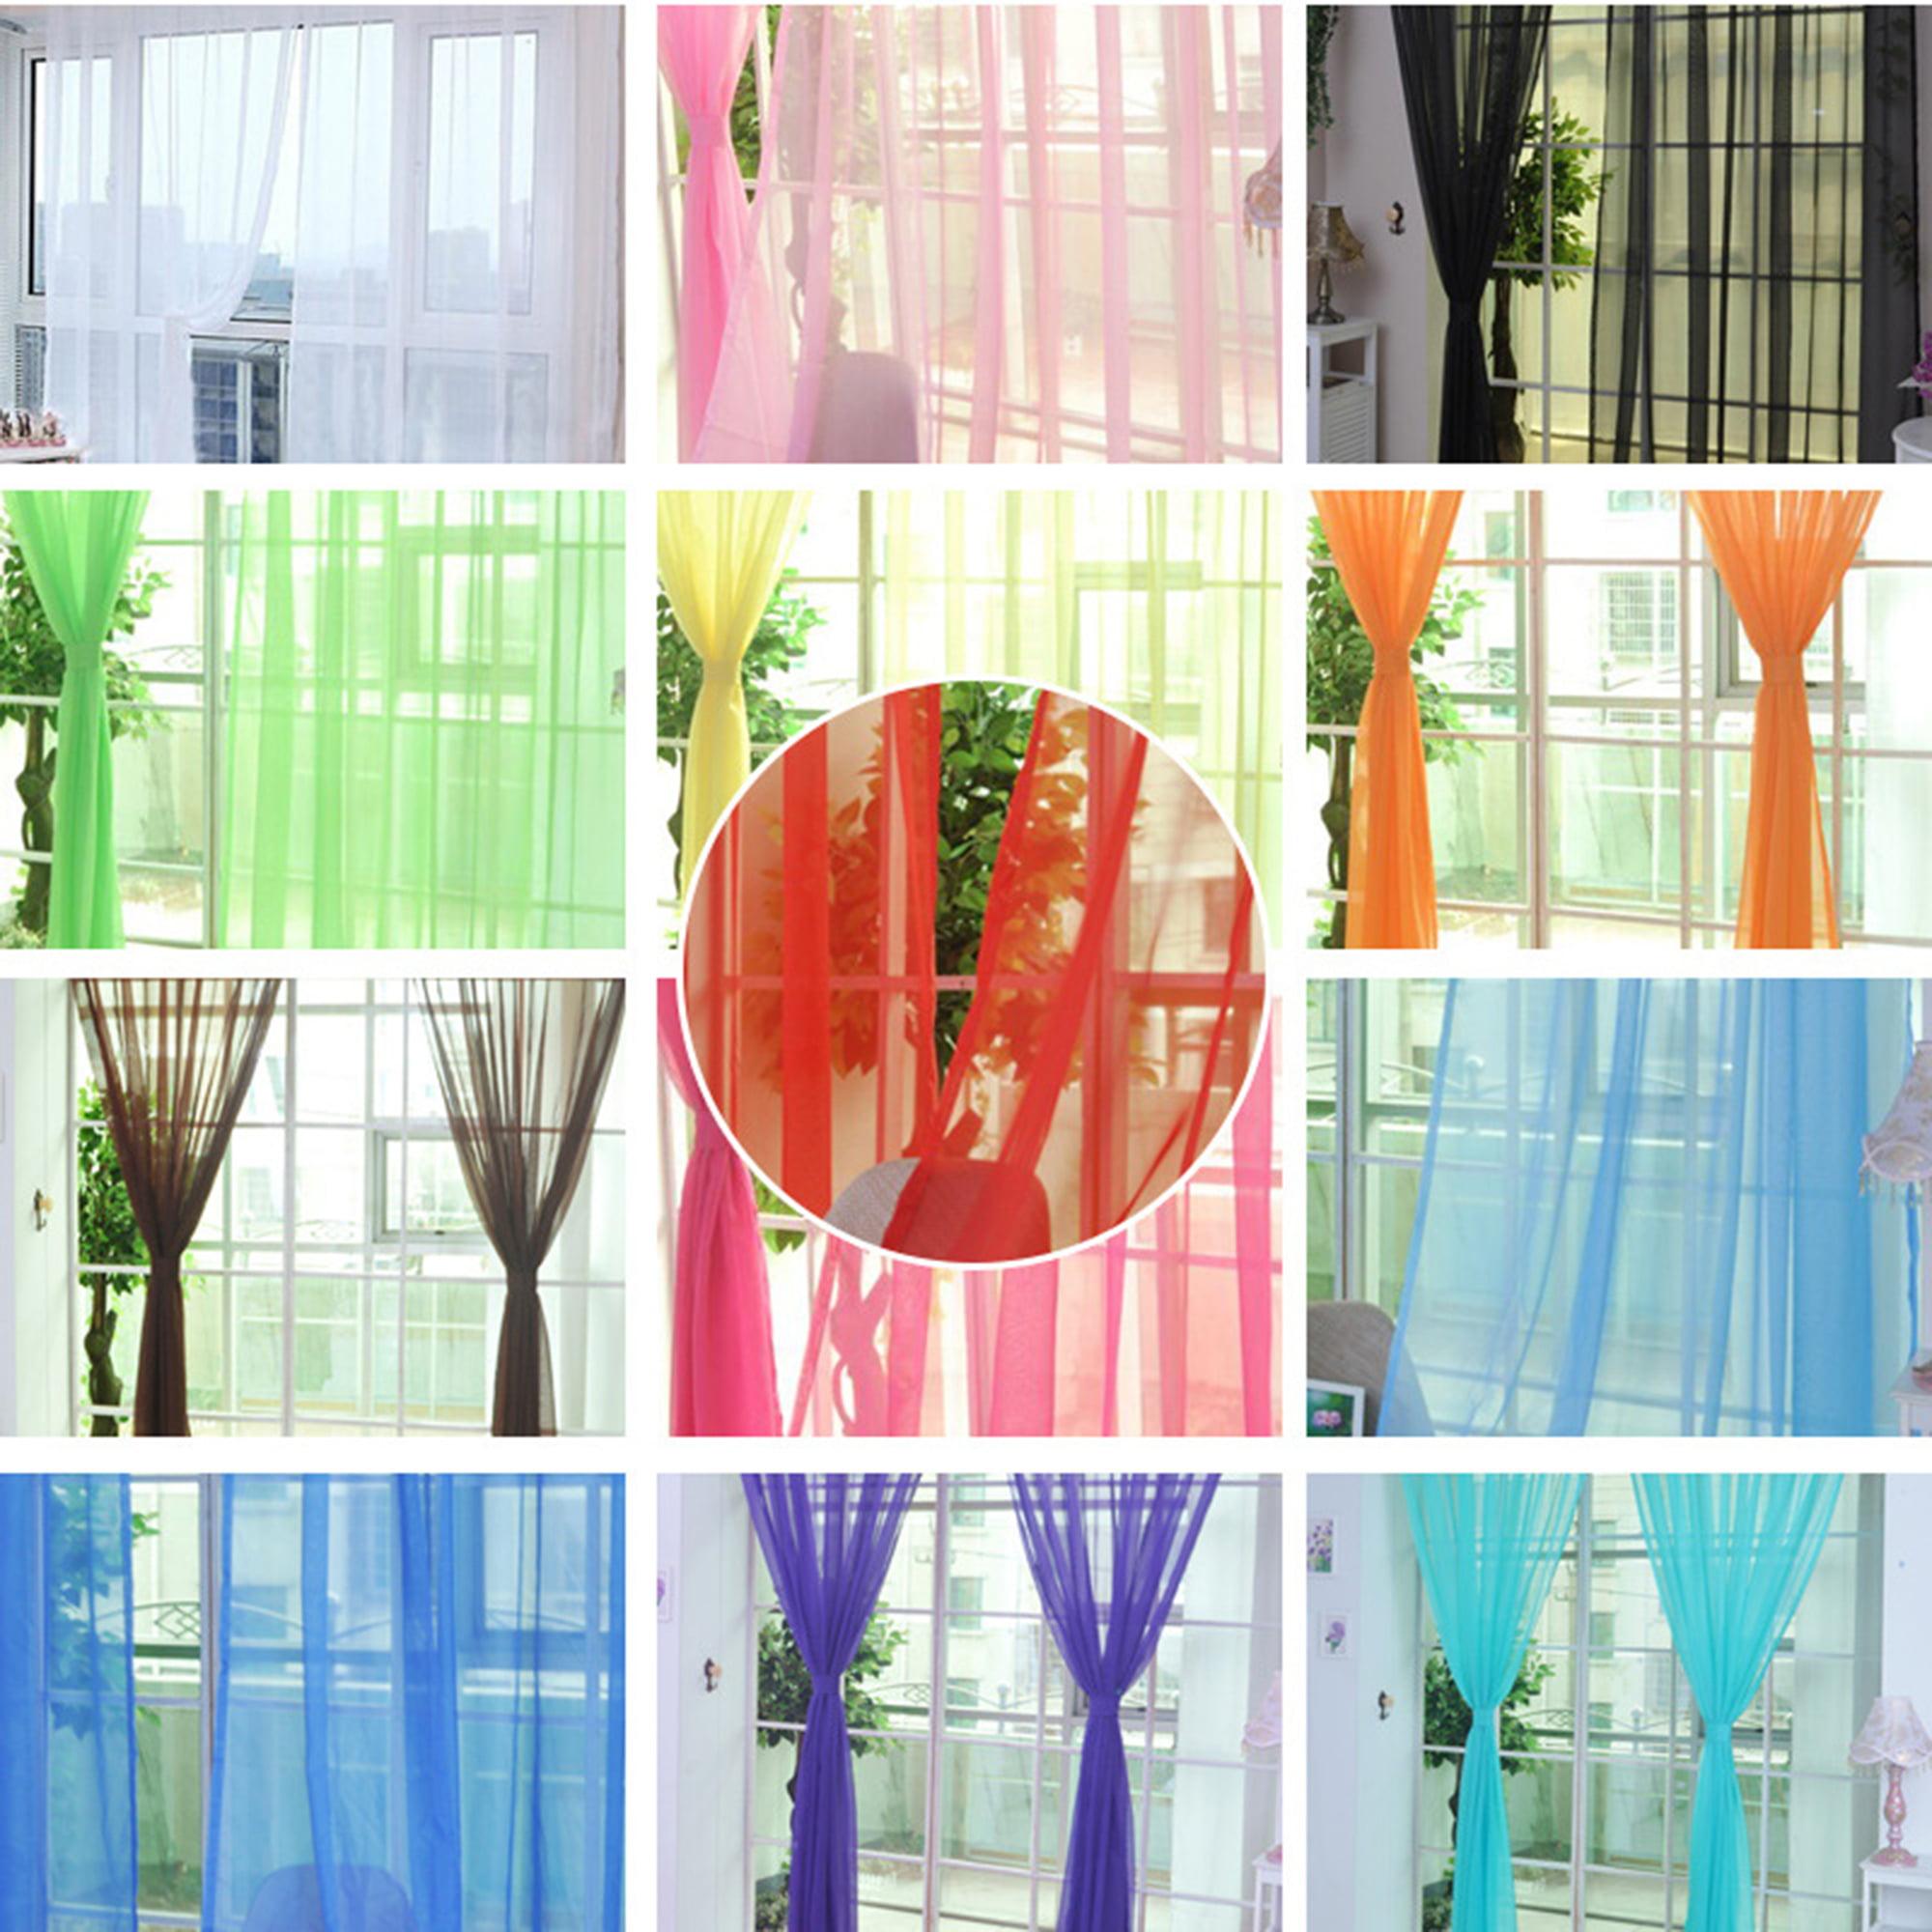 Sheer Voile Curtains Modern Solid Valances Scarf Drape Bedroom Divider Window Treatment Curtain Panels For Living Room Patio Villa Parlor Sliding